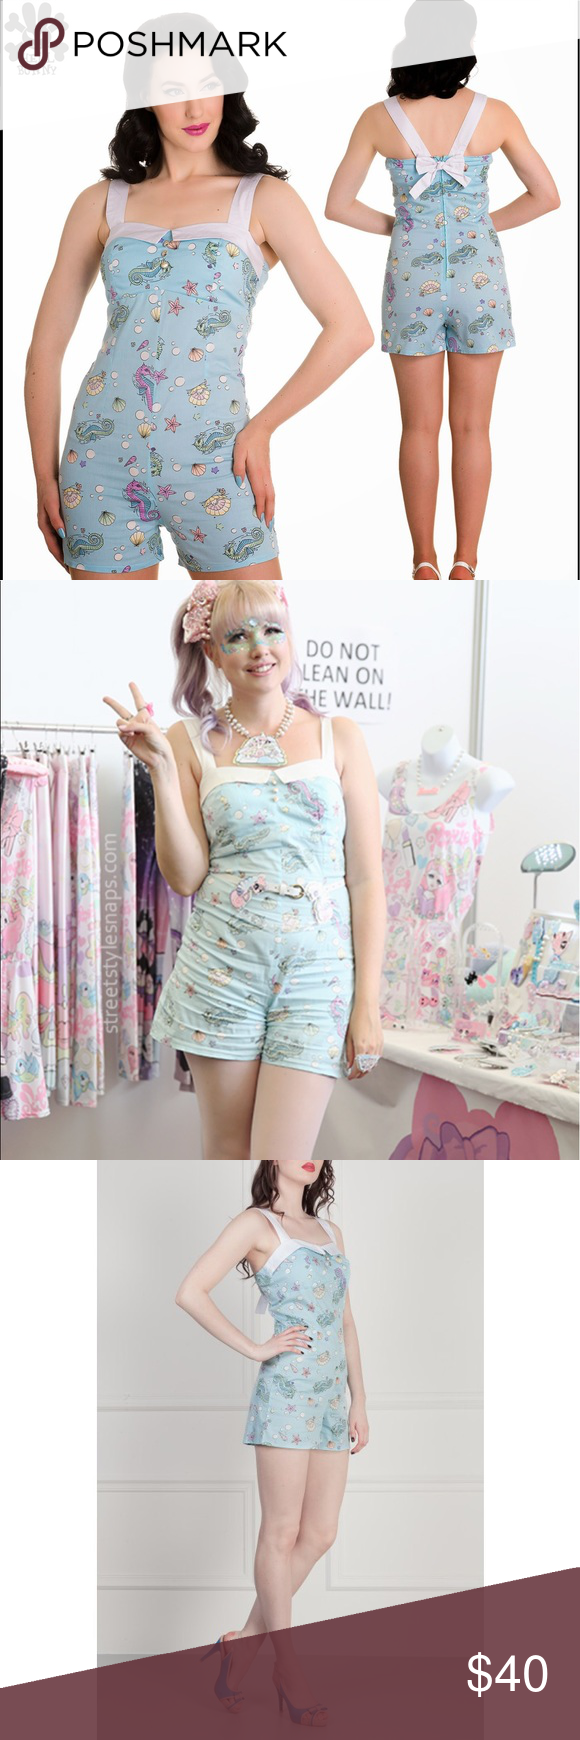 81d30518991 Hell Bunny SEAHORSE - Sea Sparkle Playsuit Blue  50s rockabilly playsuit  All over print of